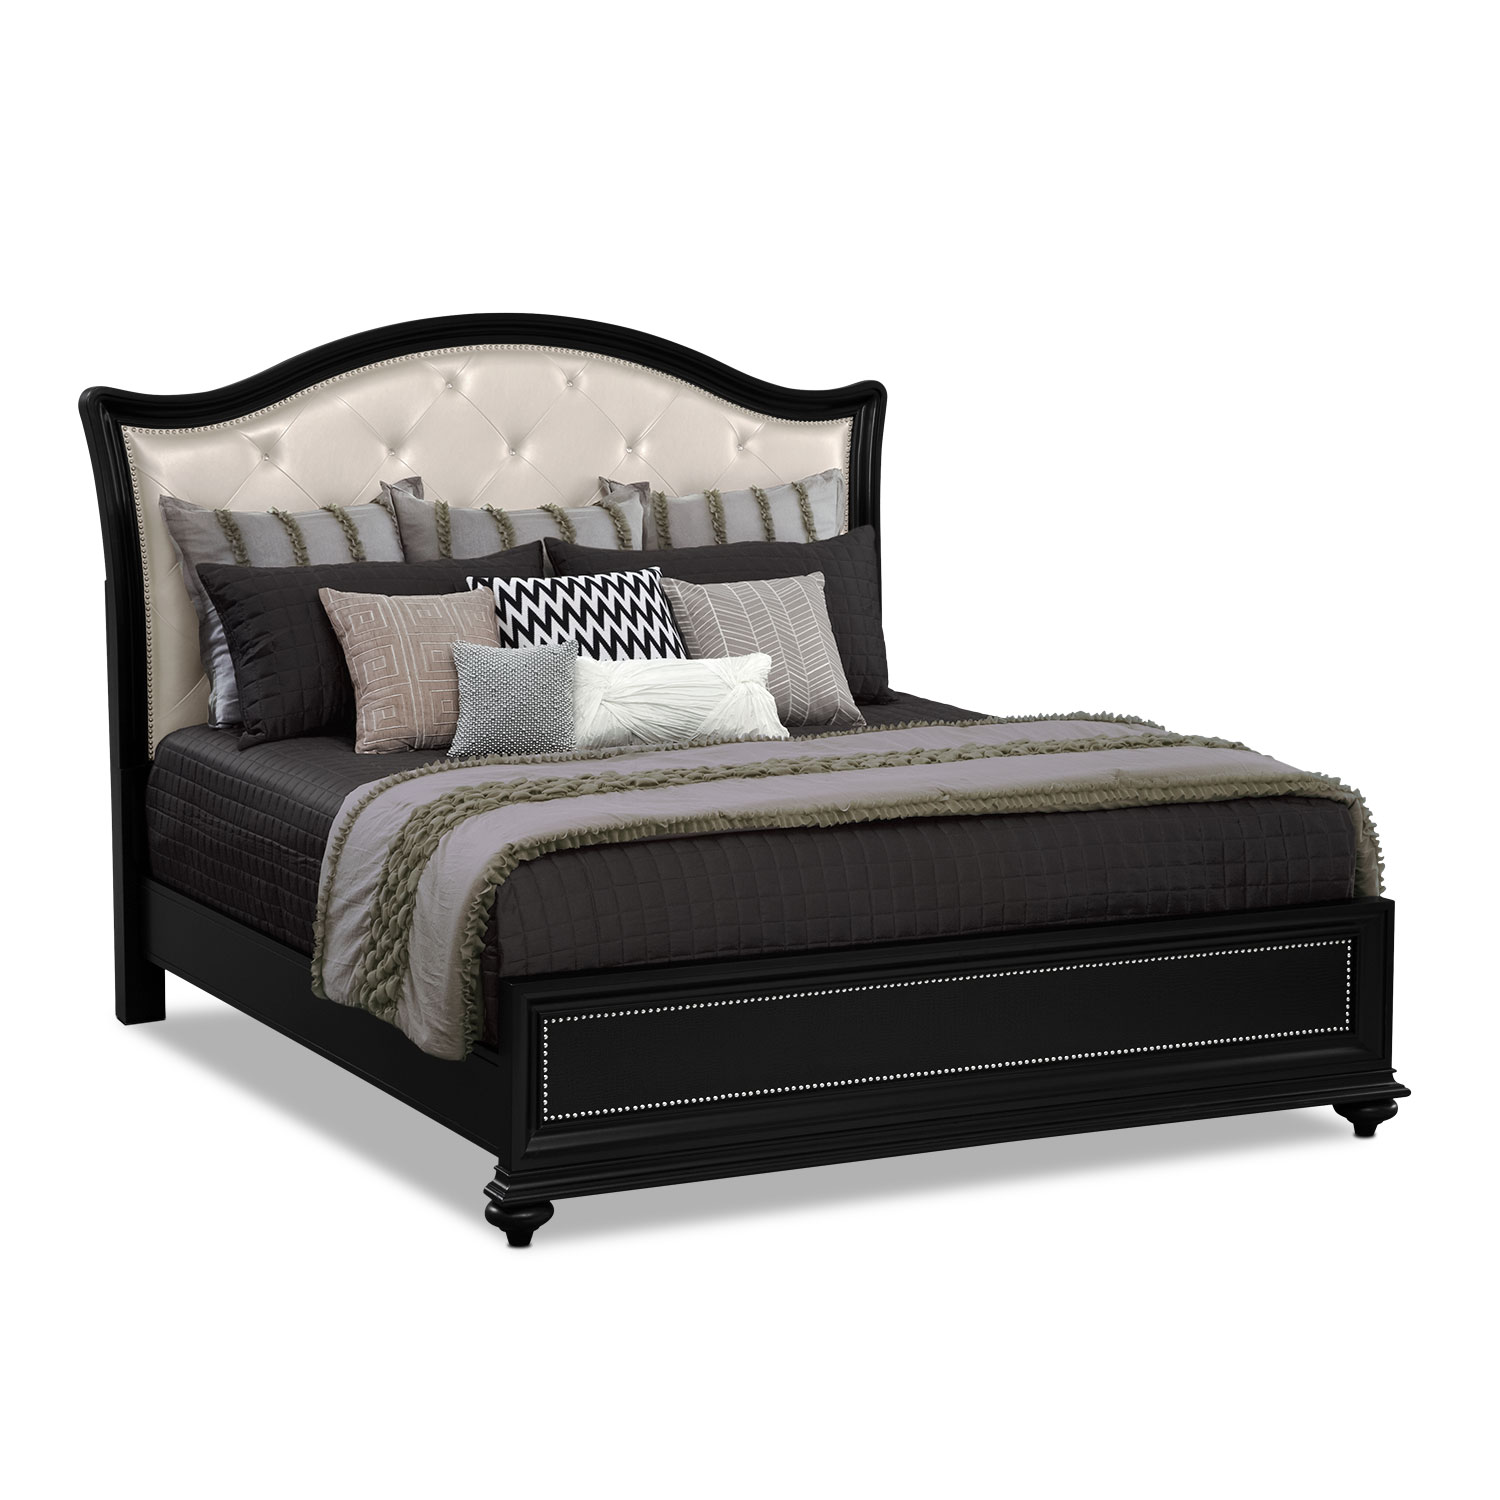 Marilyn king bed ebony value city furniture Queen size mattress price